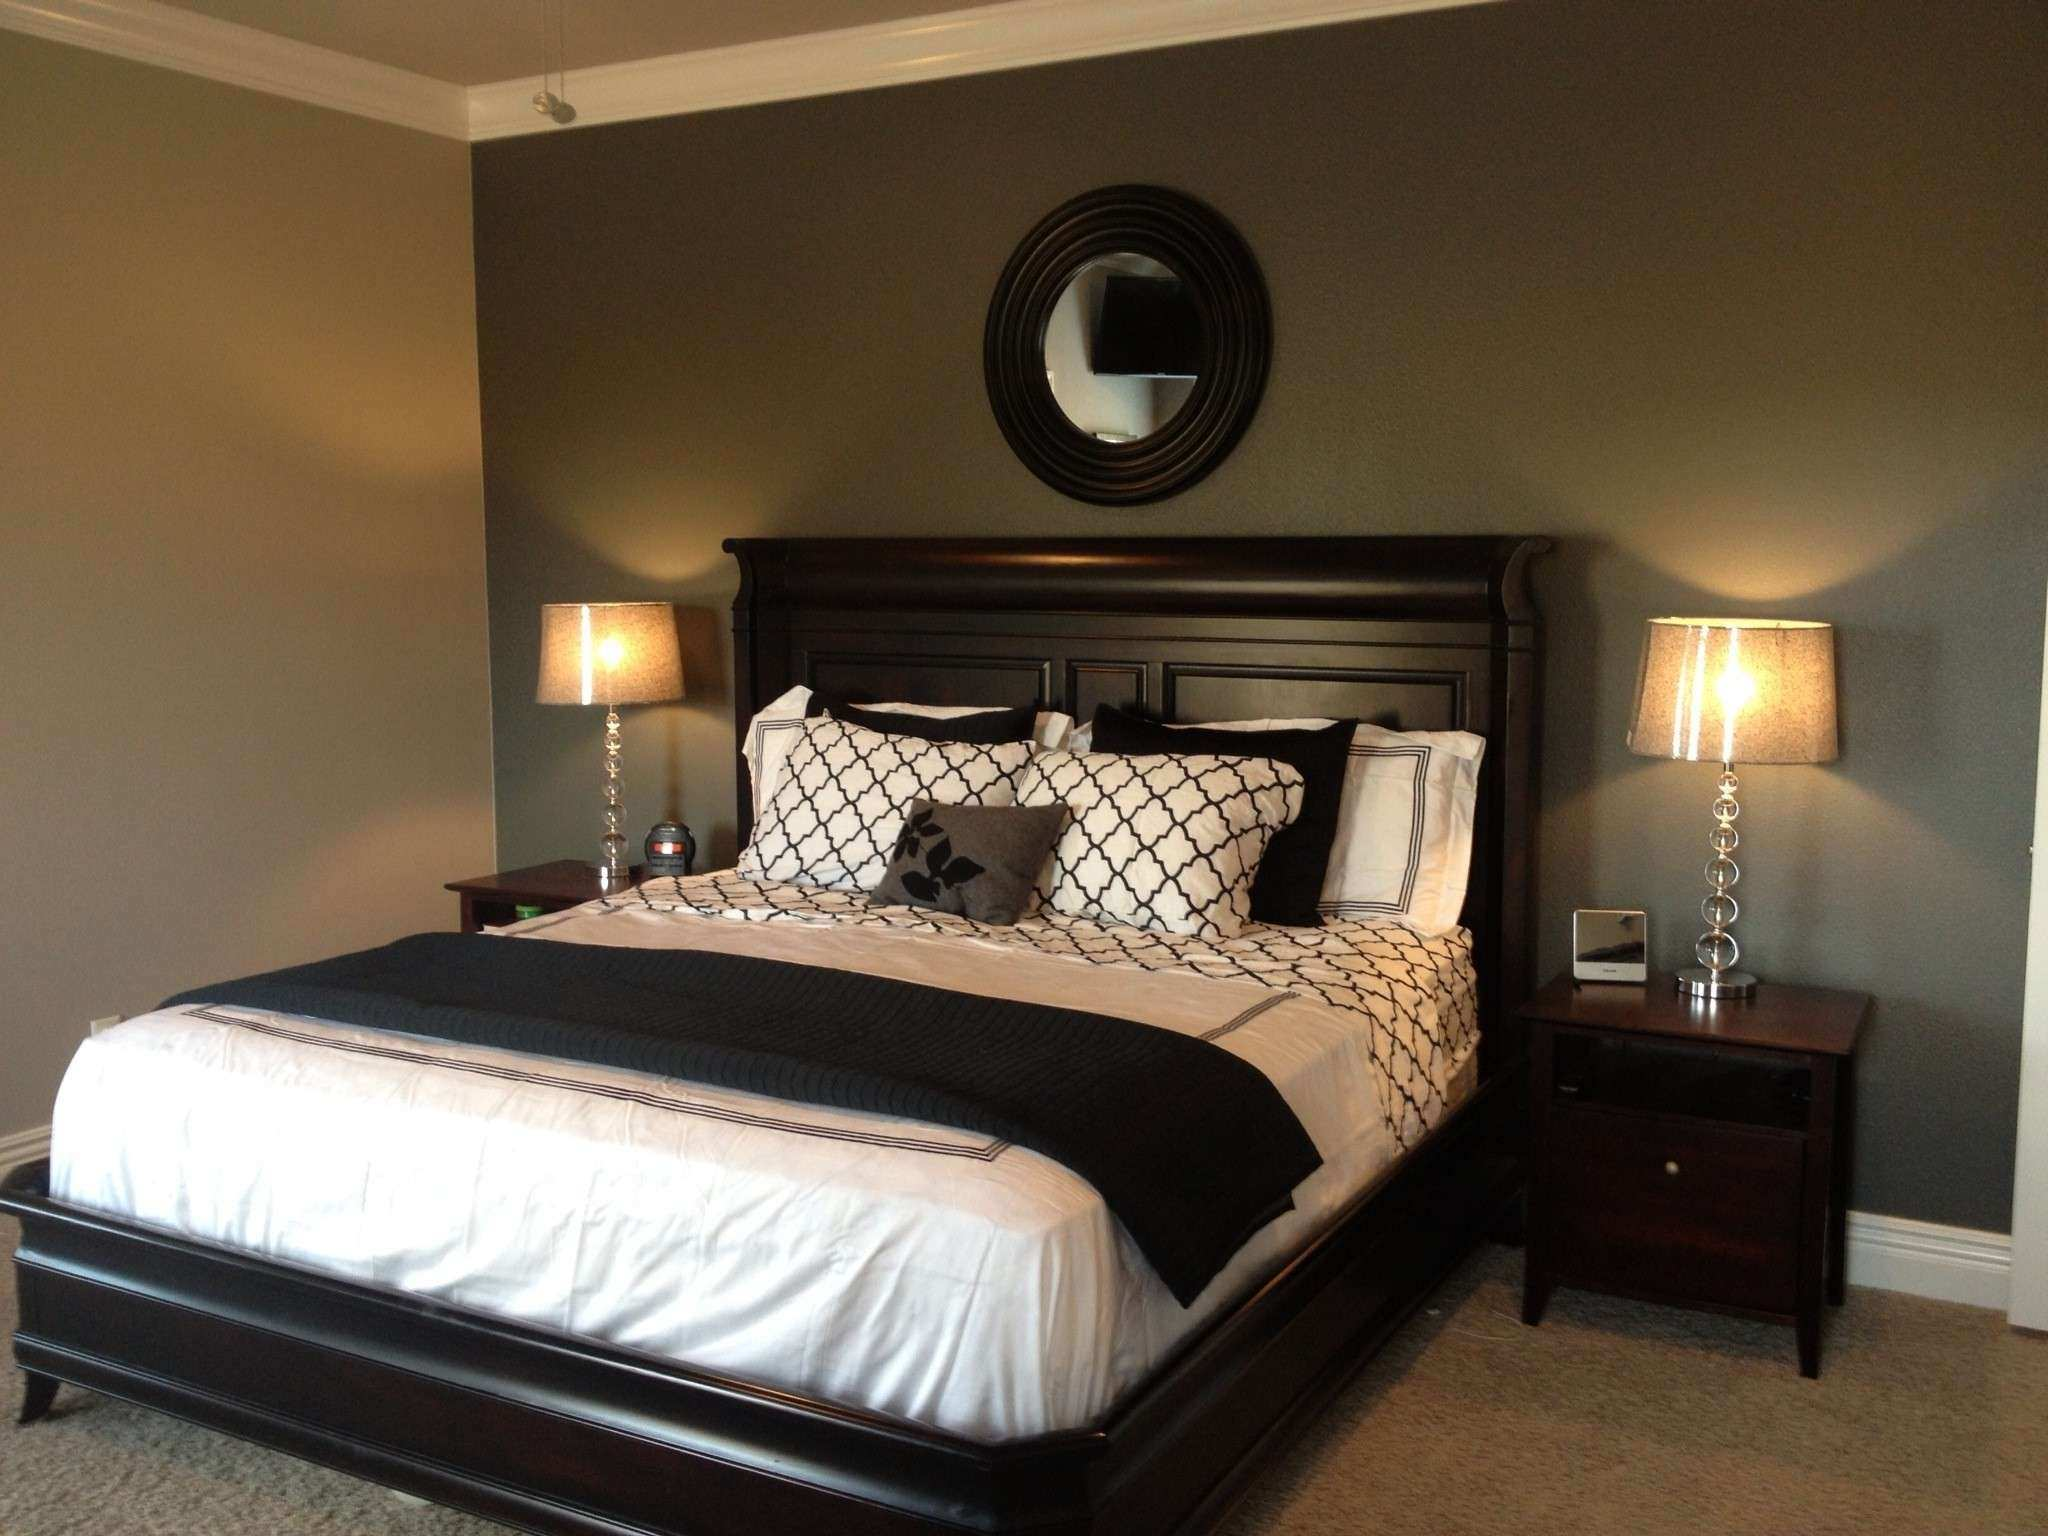 bedroom bedding to go with grey walls best gray wall color